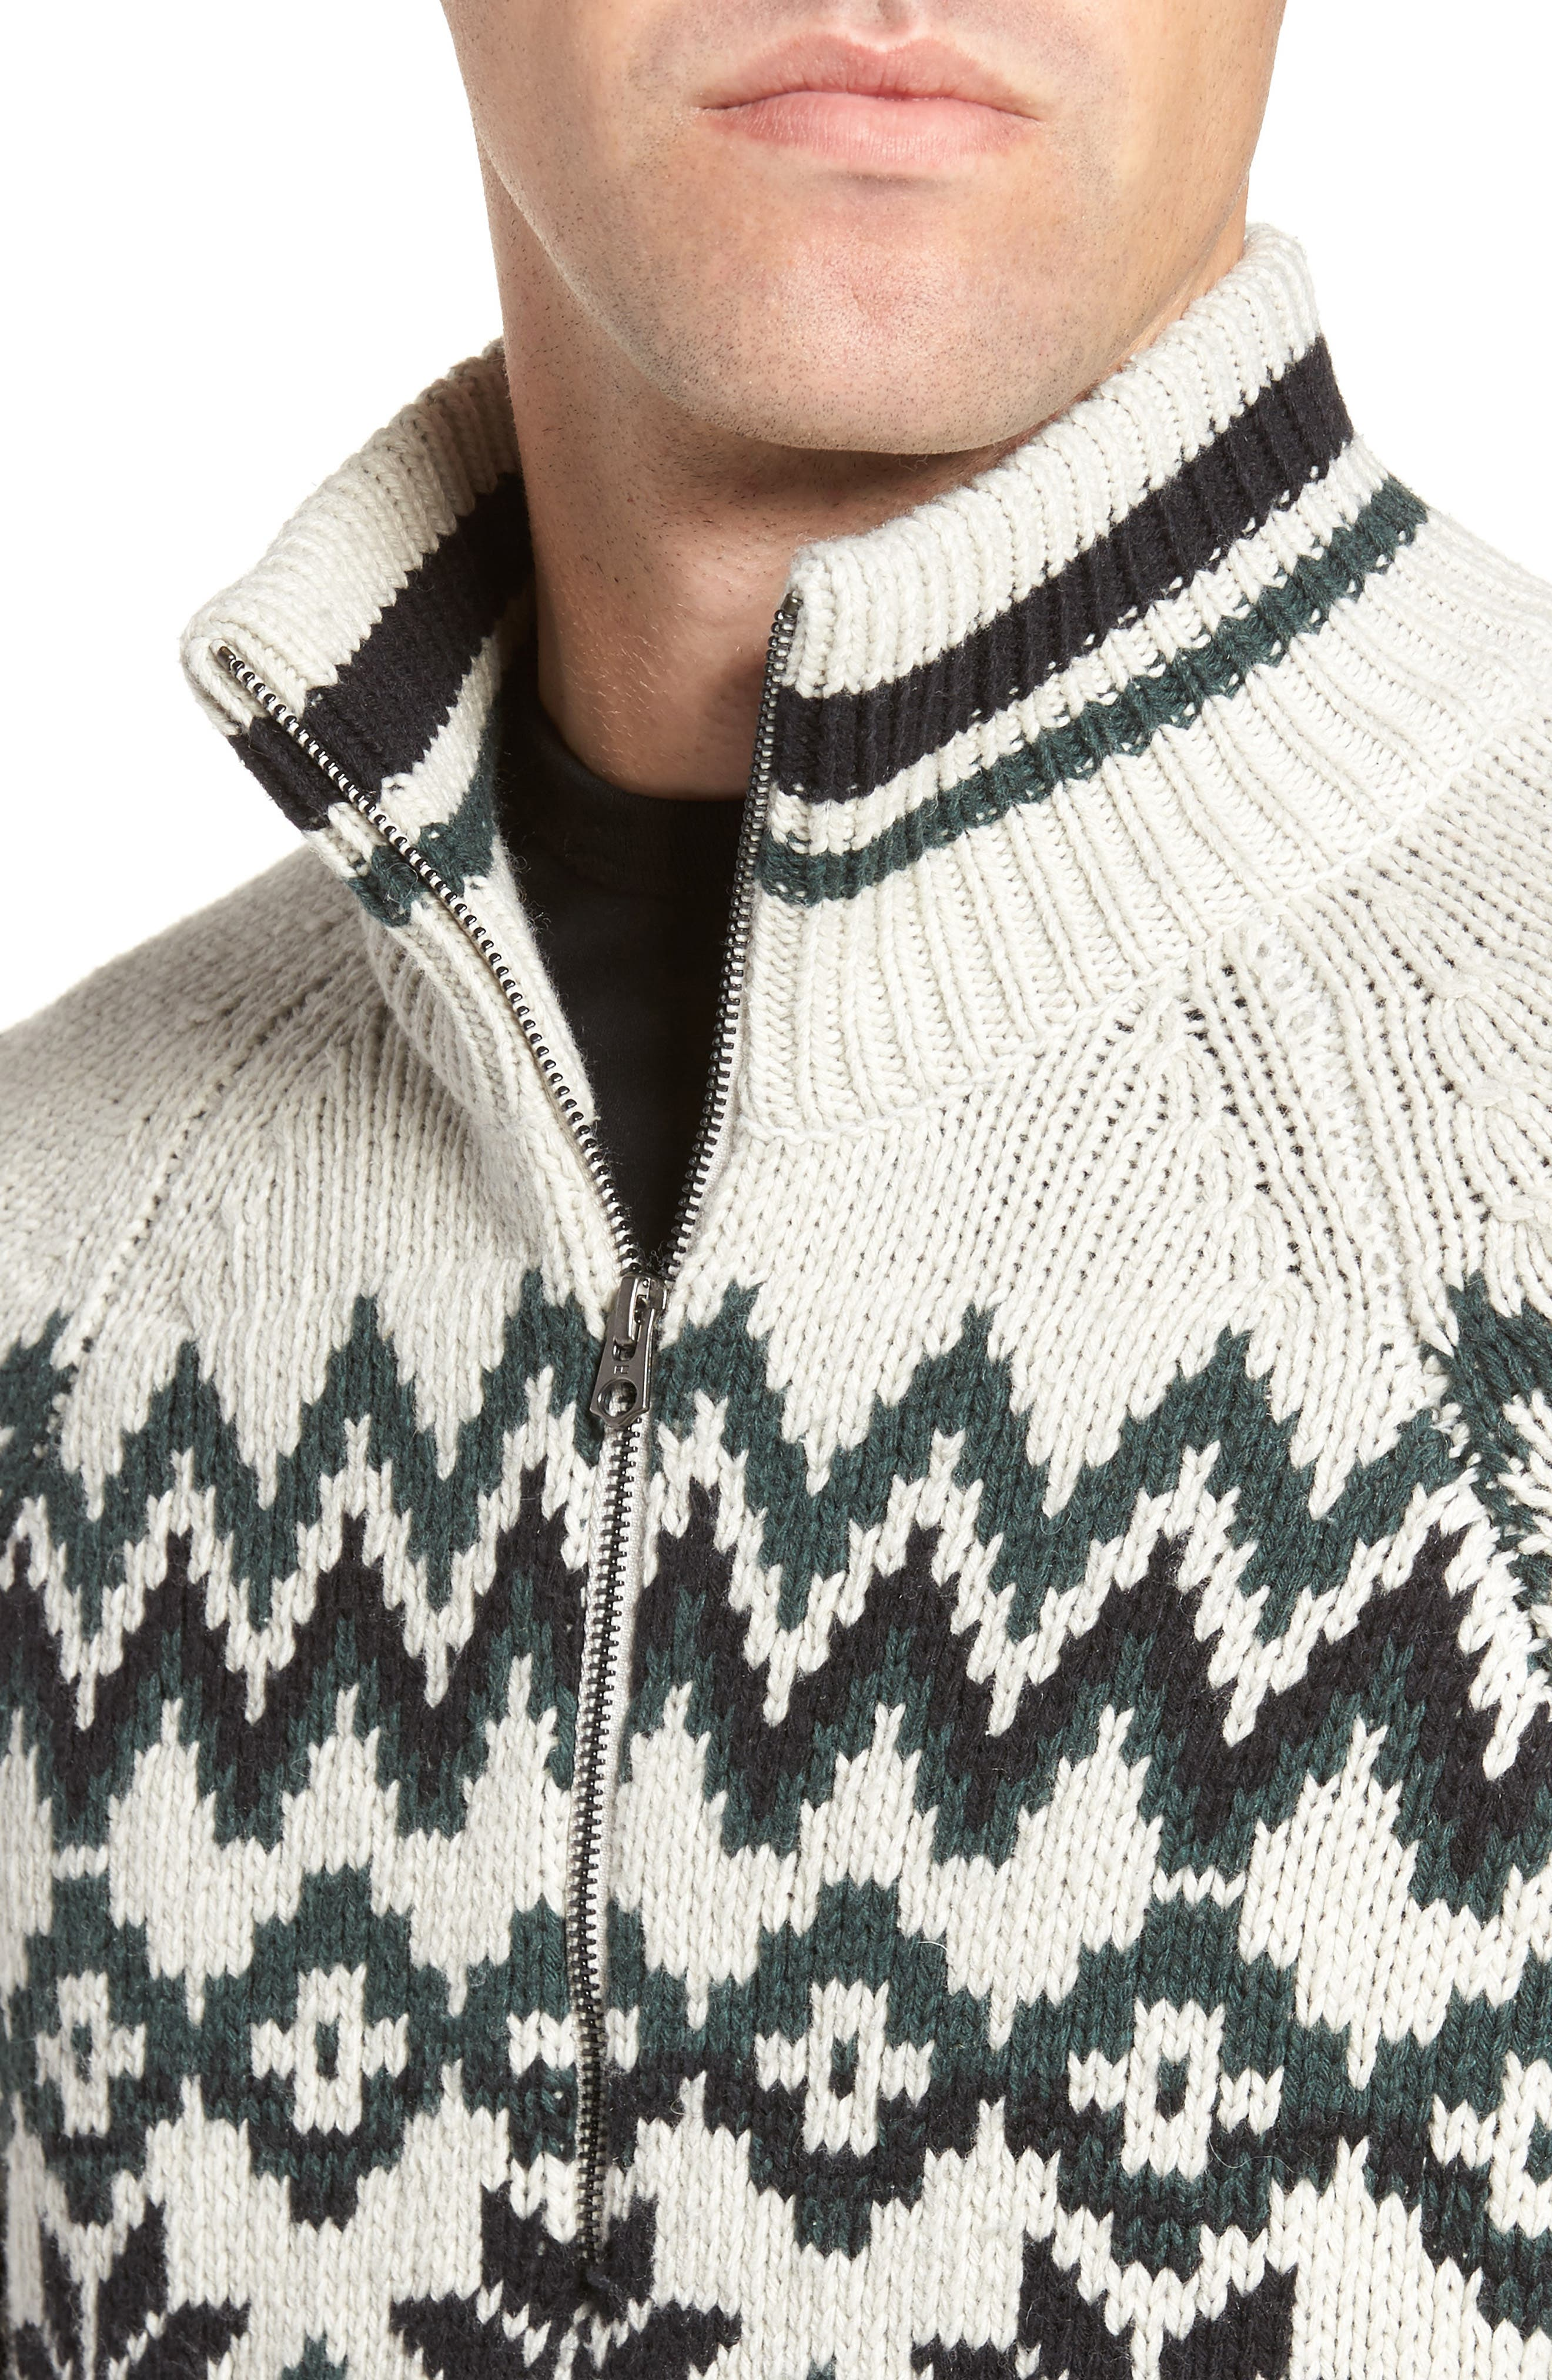 Fair Isle Ski Sweater,                             Alternate thumbnail 4, color,                             Clay/ Darkest Spruce/ Black